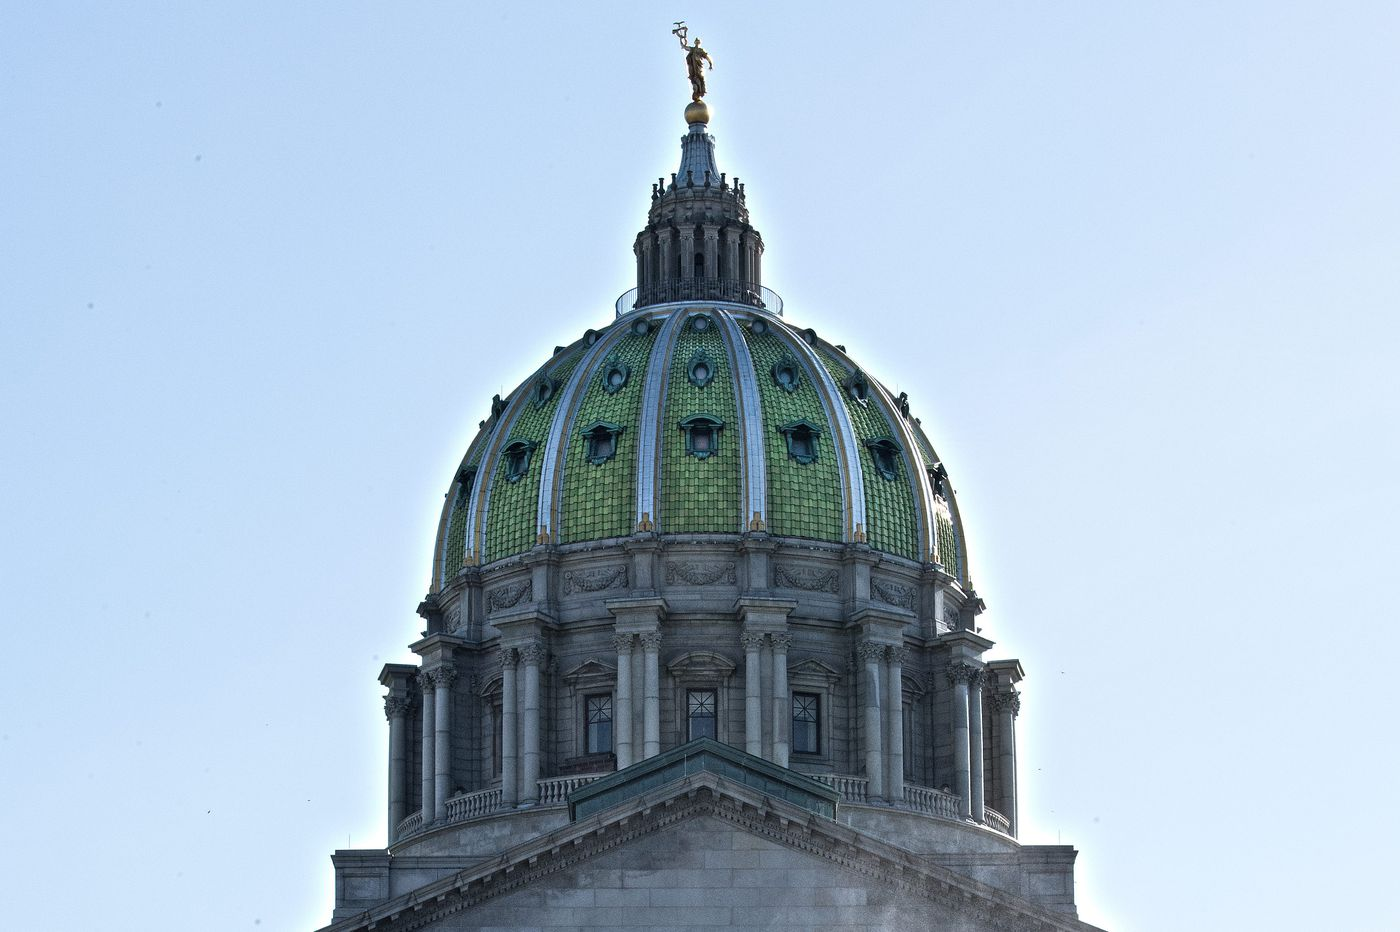 Pa. Senate security force convulsed by harassment complaints, lawsuits